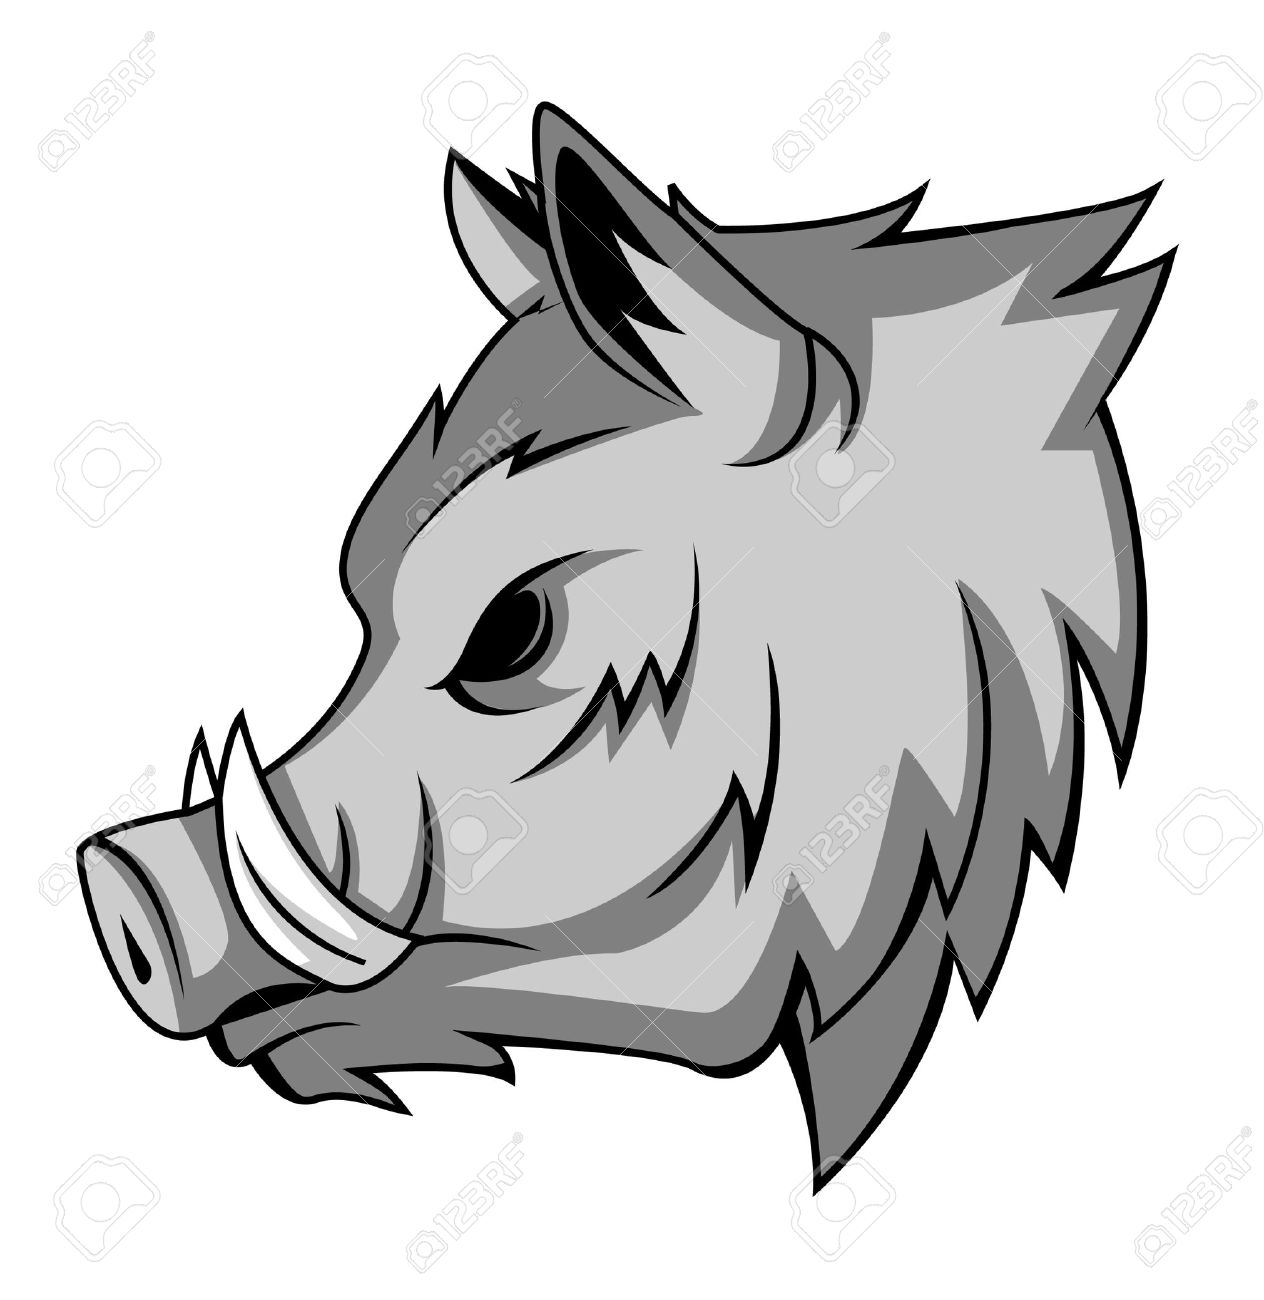 Wild boar royalty free cliparts vectors and stock illustration wild boar stock vector 24155924 biocorpaavc